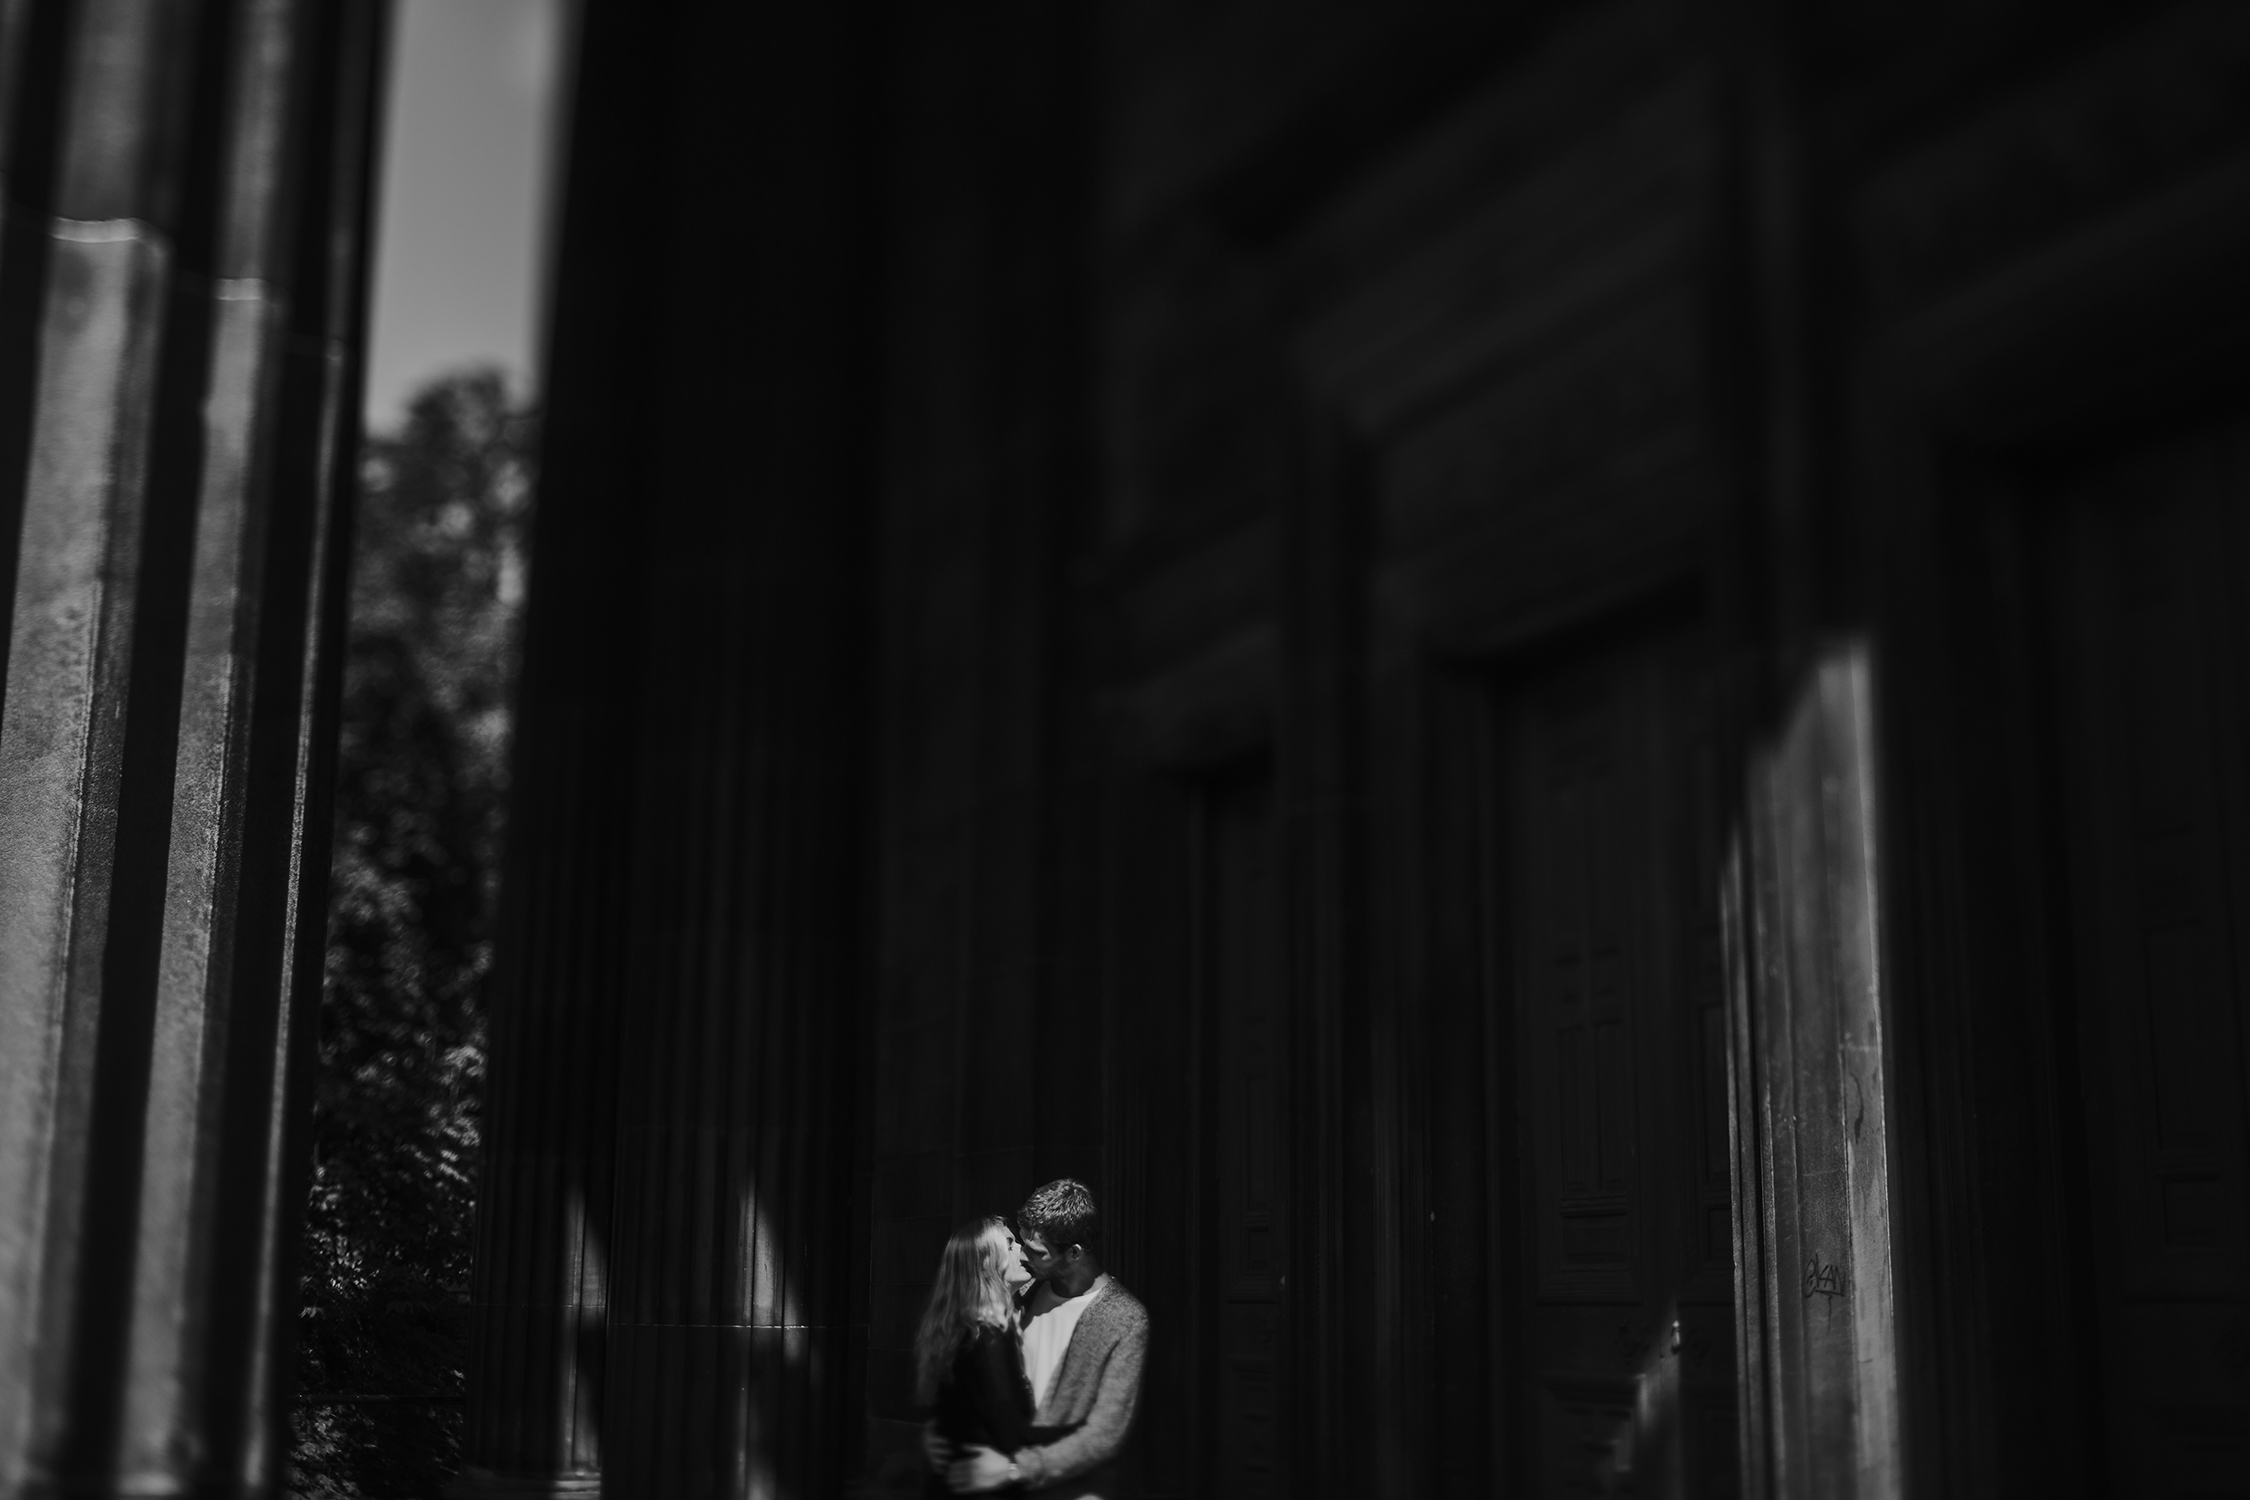 romantic_city_elopement_glasgow_edinburgh_wedding_photographer_18